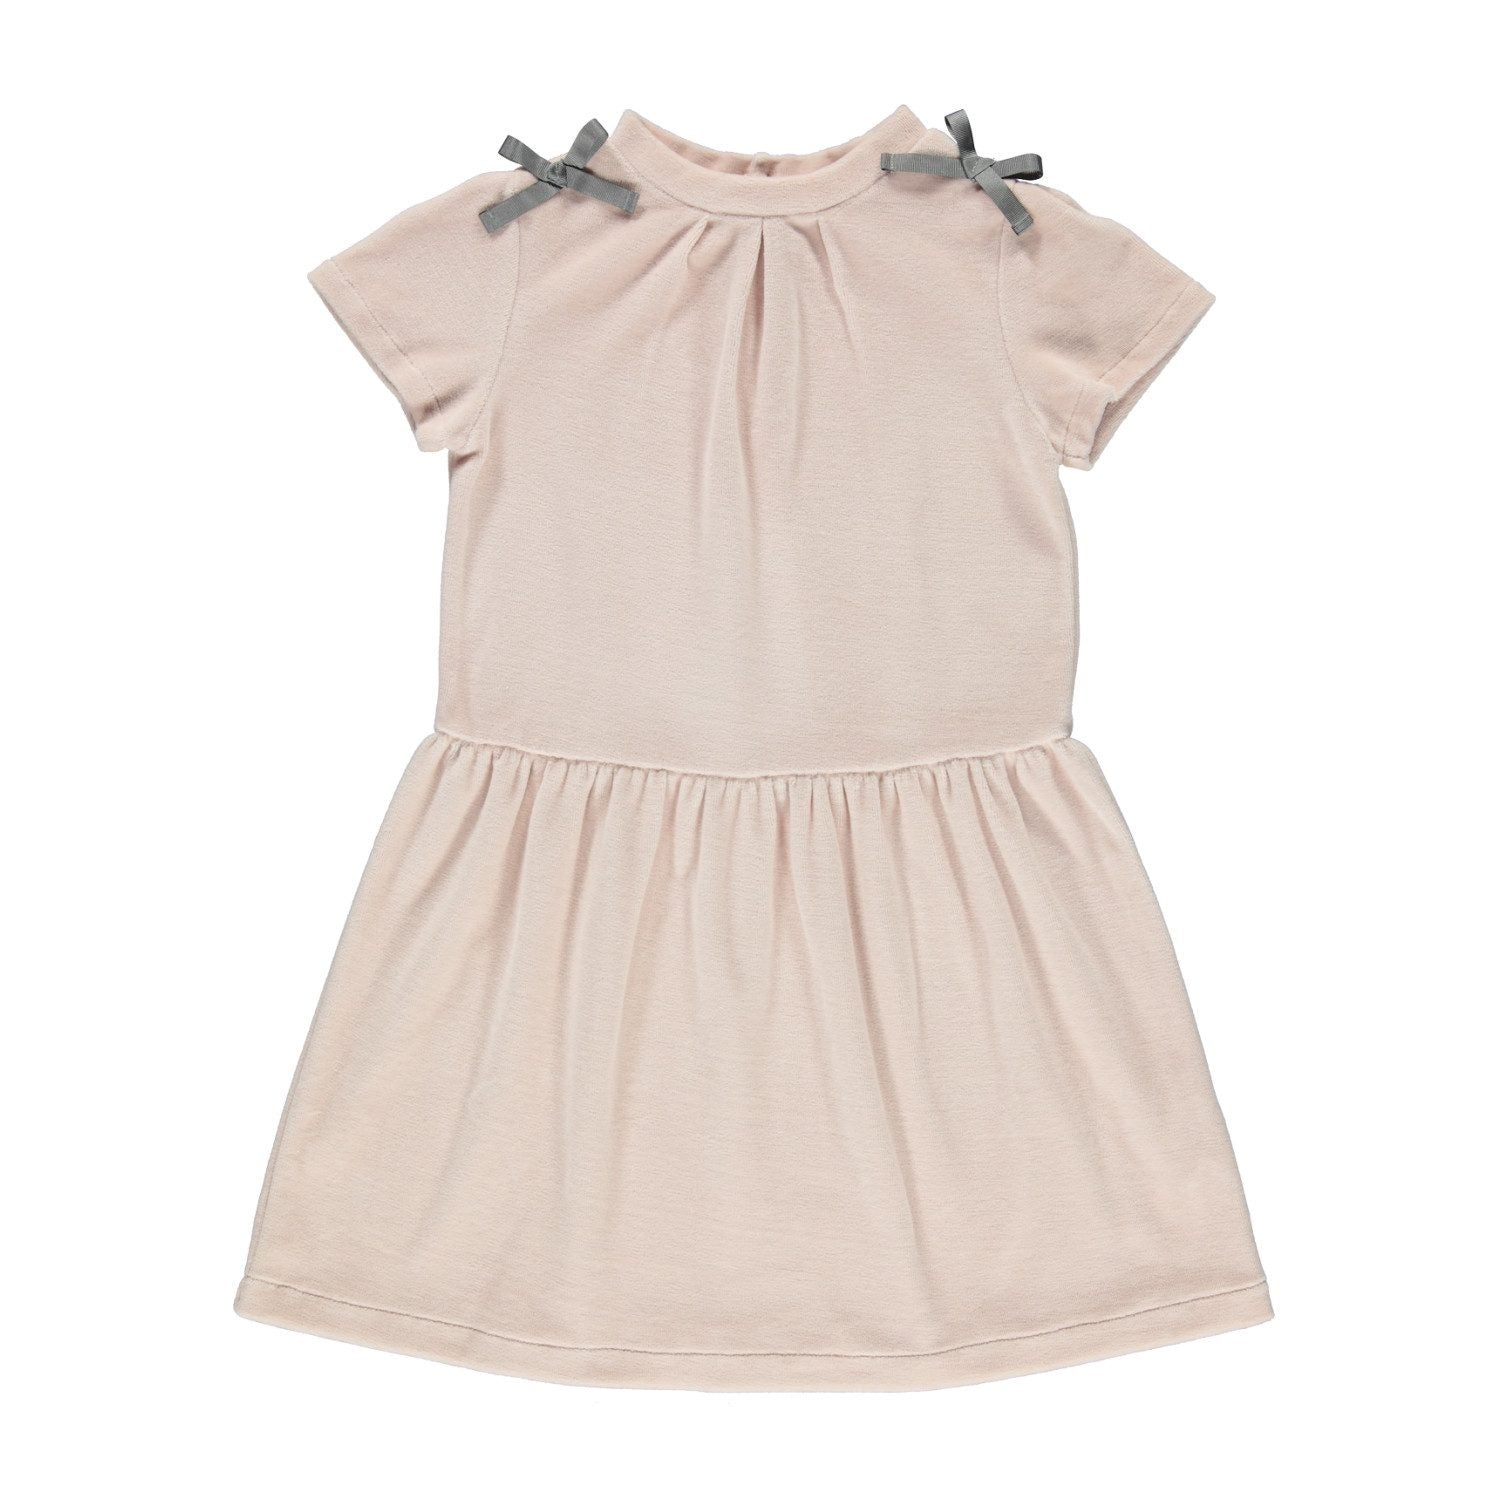 ORGANIC EMILIA DRESS, ROSE PETAL | BEBE ORGANIC - Spinel Boutique